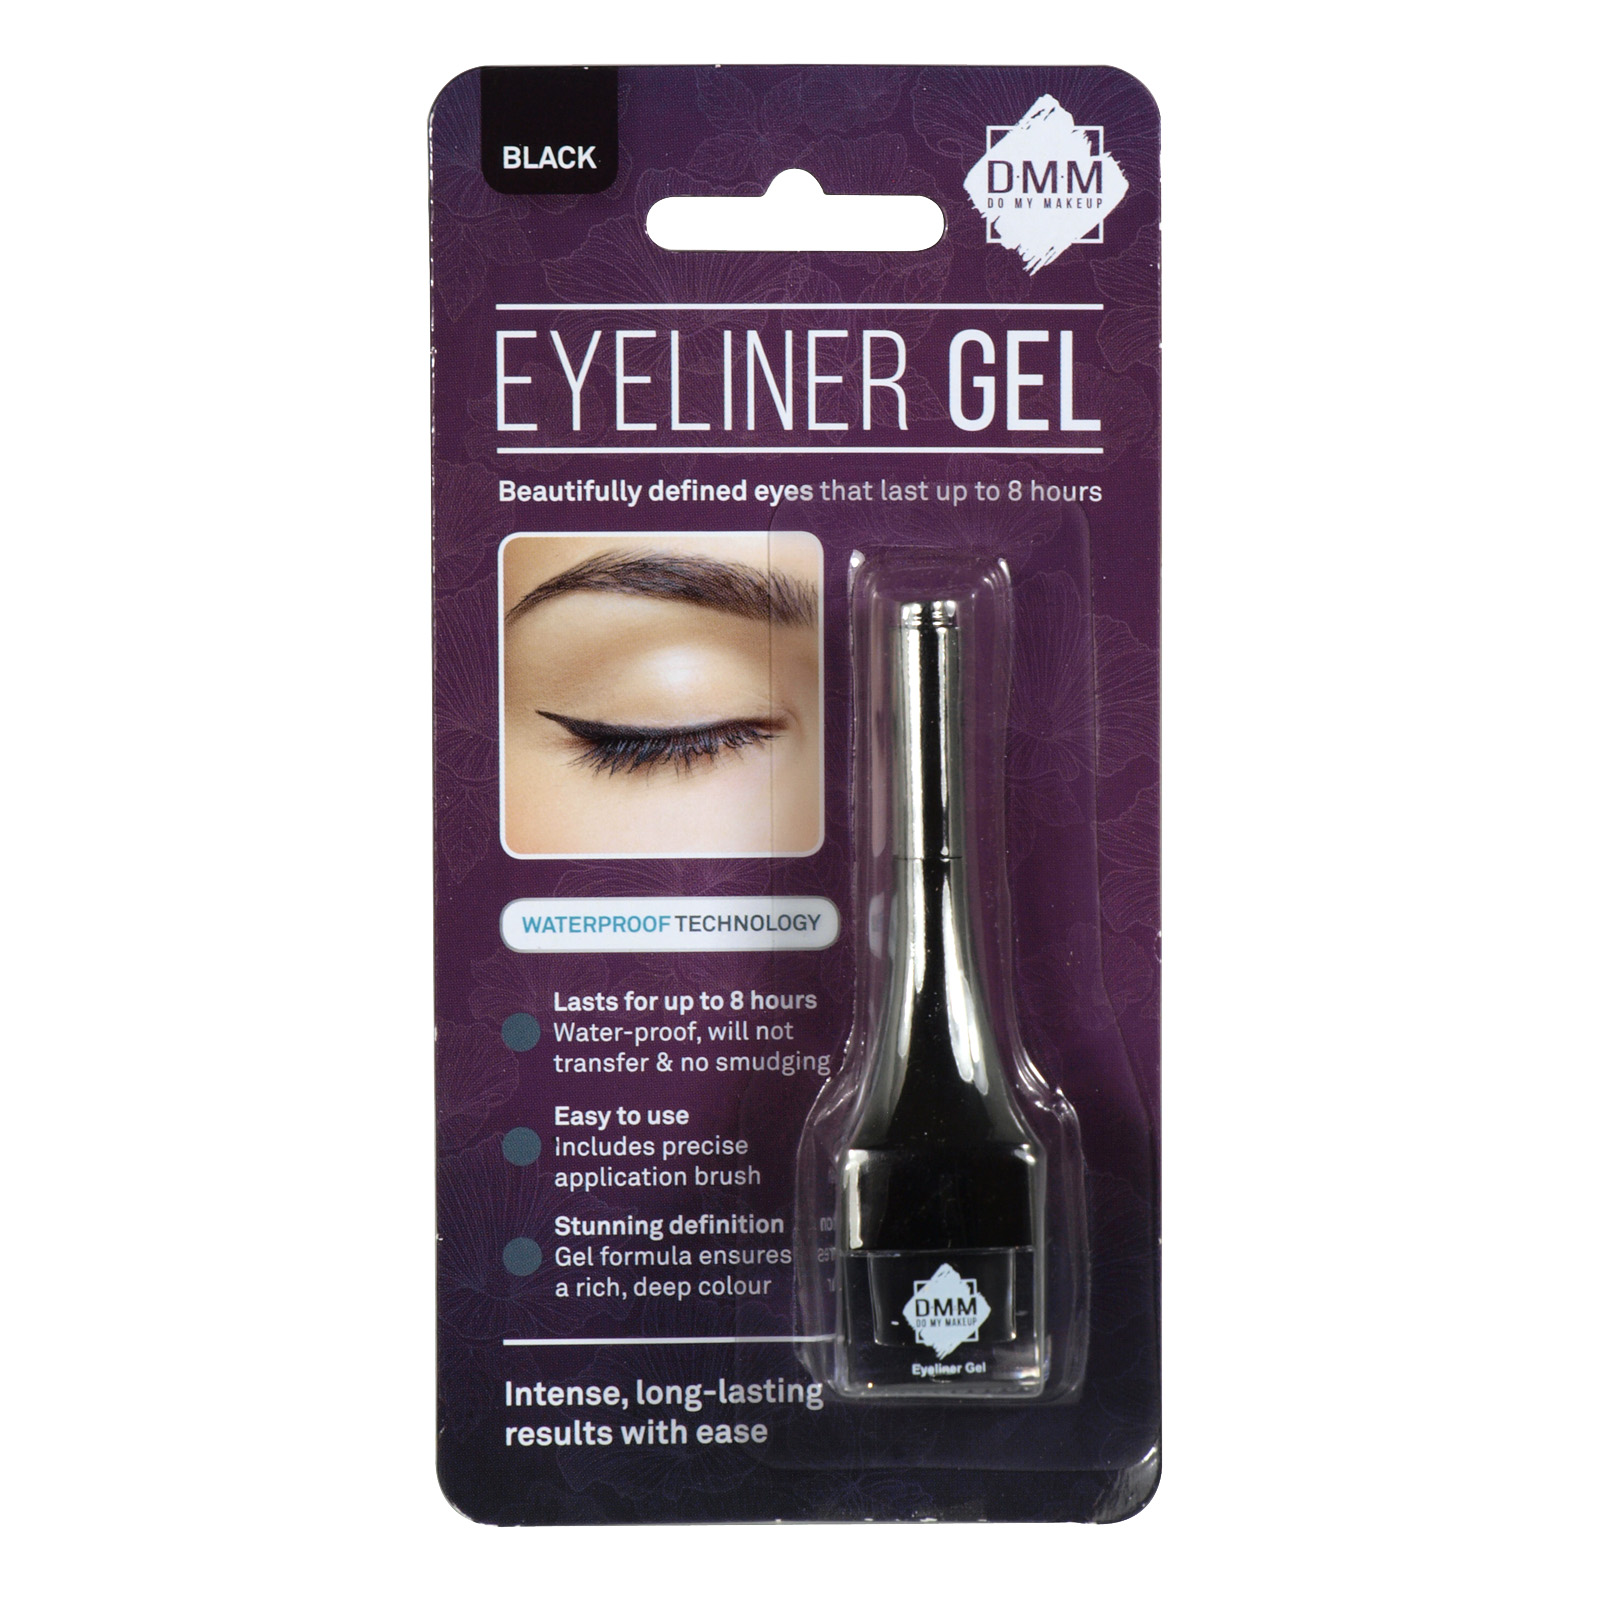 DMM EYELINER GEL BLACK